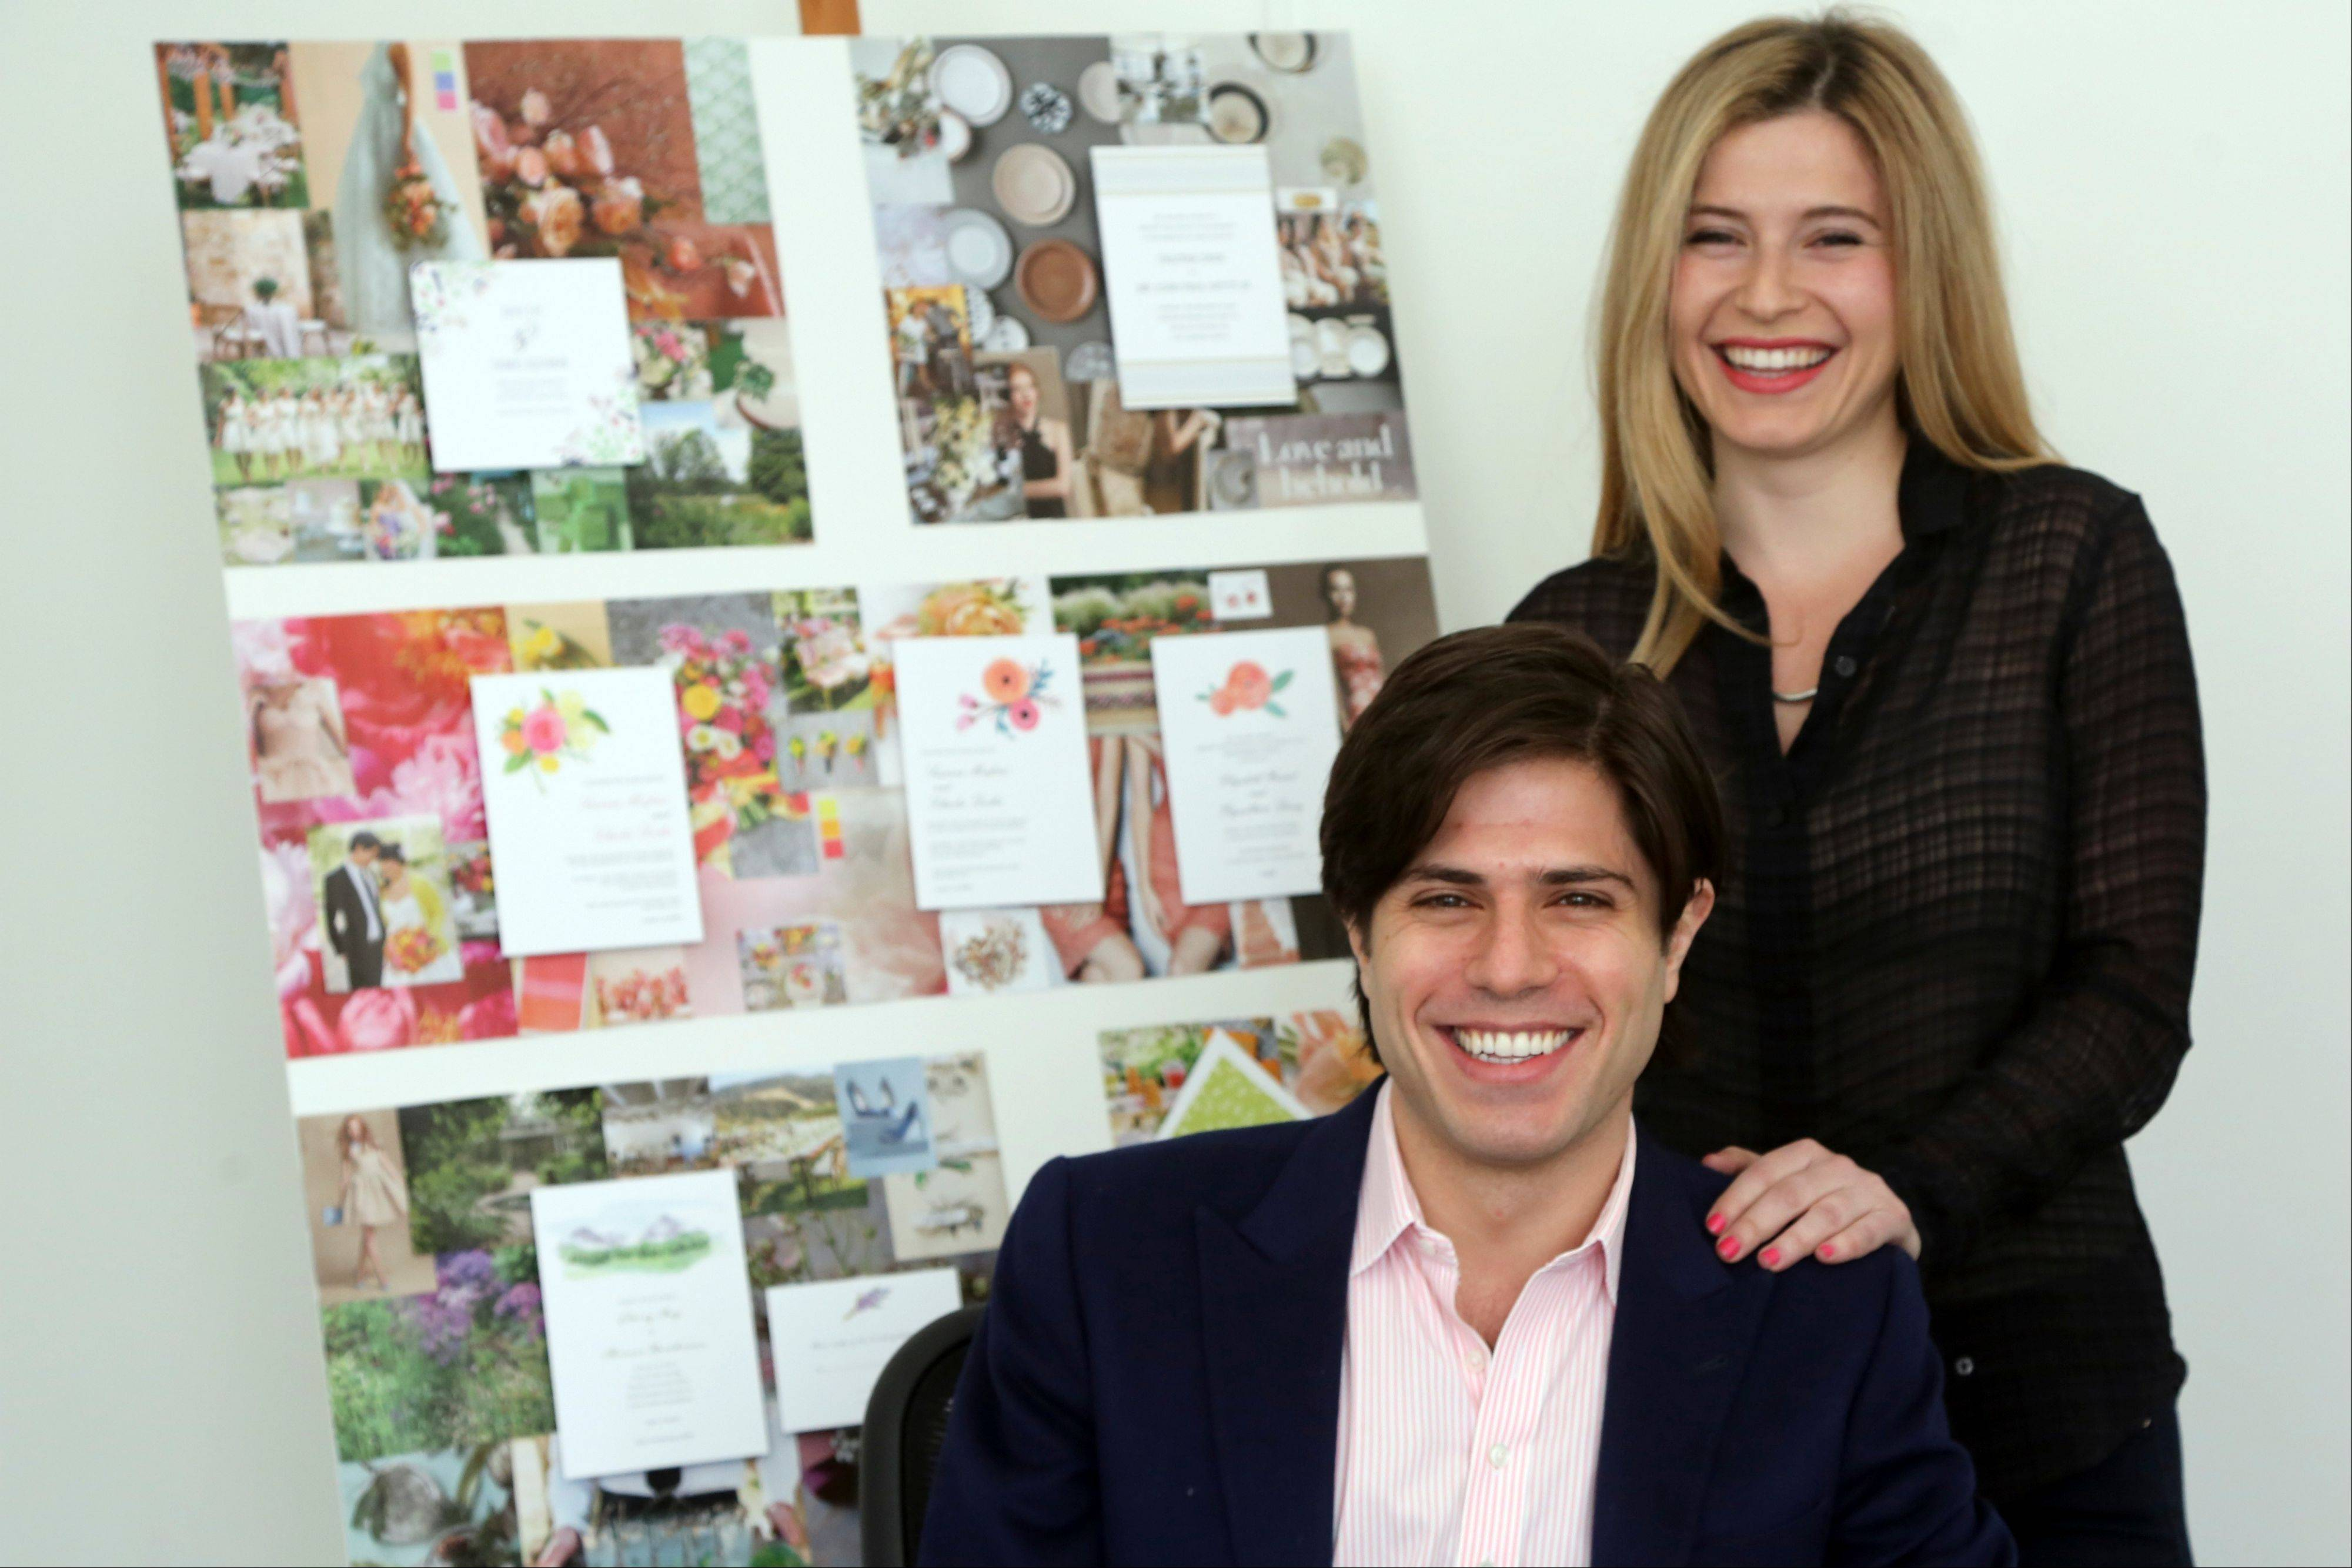 In this Friday, March 29, 2013 photo Alexa Hirschfeld, right, and James Hirschfeld smile as they pose for a photo at their office in New York. Paperless Post has defied its original digital business model successfully once. Now the online invitation and greeting card startup is taking that defiance a step further. The New Yaork company launched PAPER by Paperless Post in October after customers requested a way to get its electronic greeting cards and invitations in a more old-fashioned way: On actual paper. Now Paperless Post is teaming up with stationery.